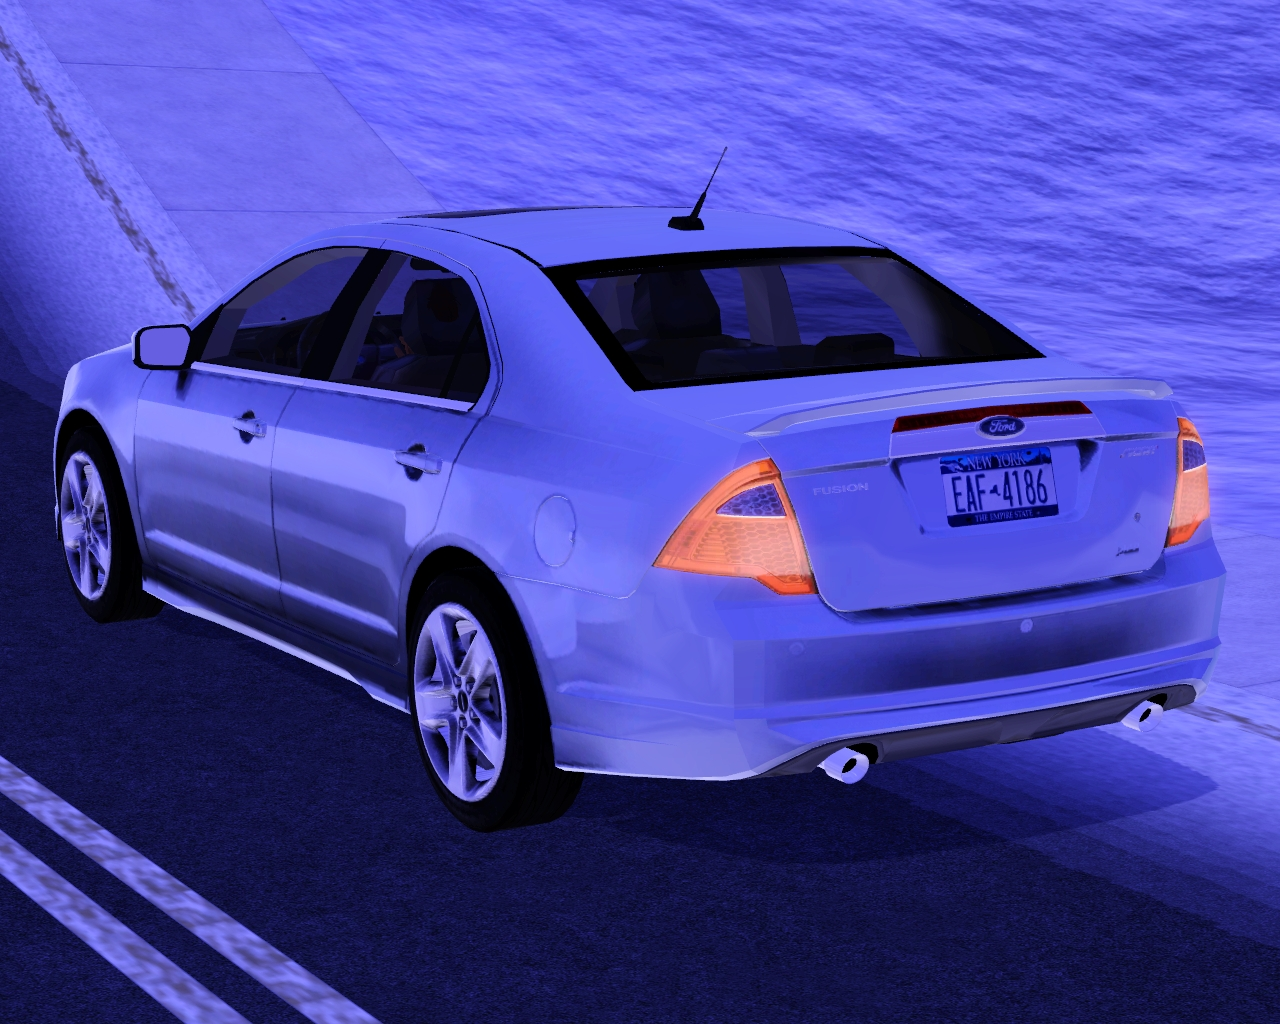 my sims 3 blog 2010 ford fusion by fresh prince. Black Bedroom Furniture Sets. Home Design Ideas